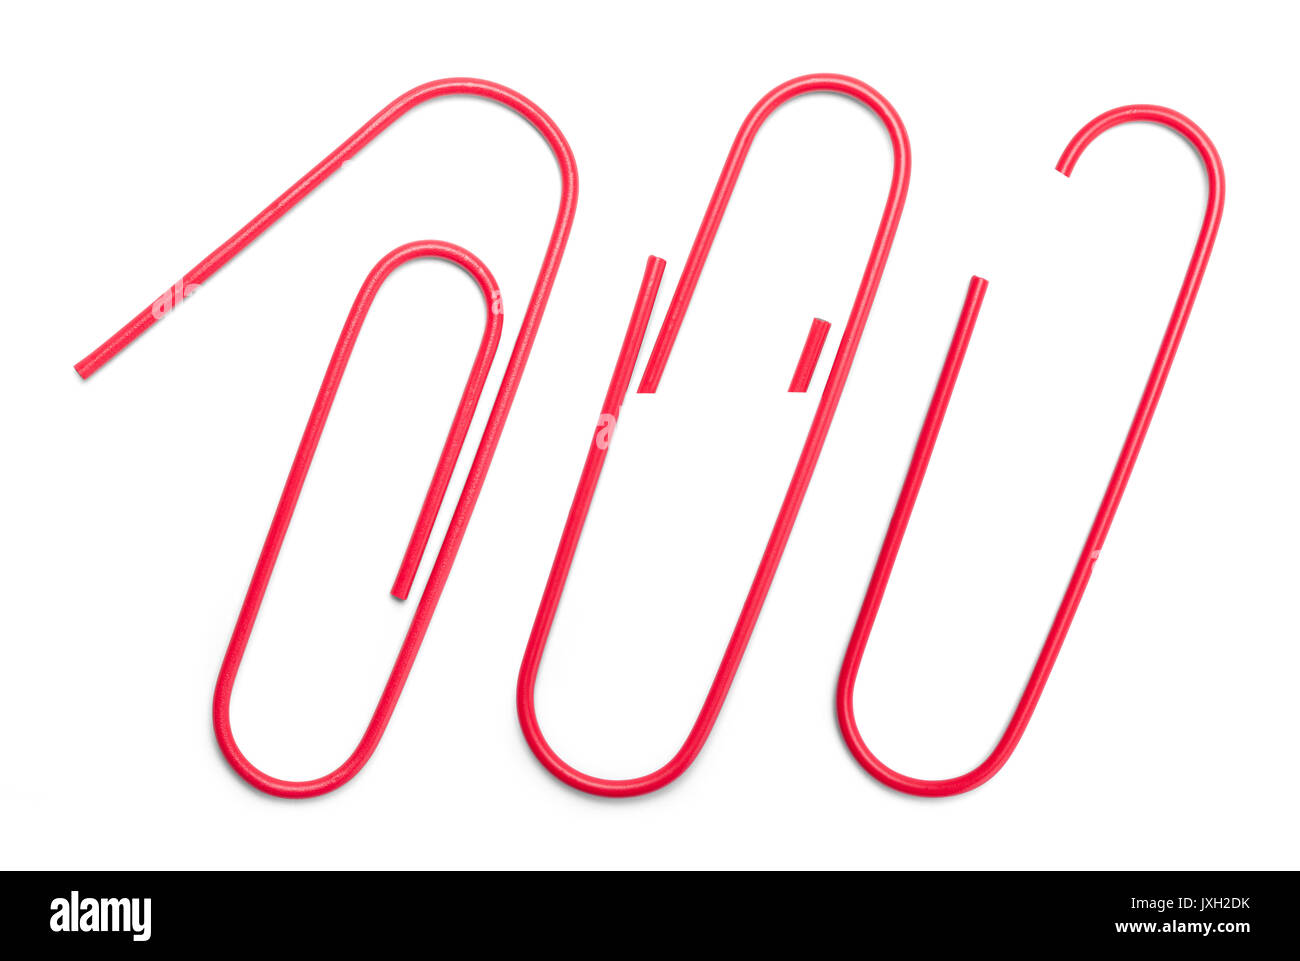 Three Red Paper Clips Variations Isolated on White Background. - Stock Image